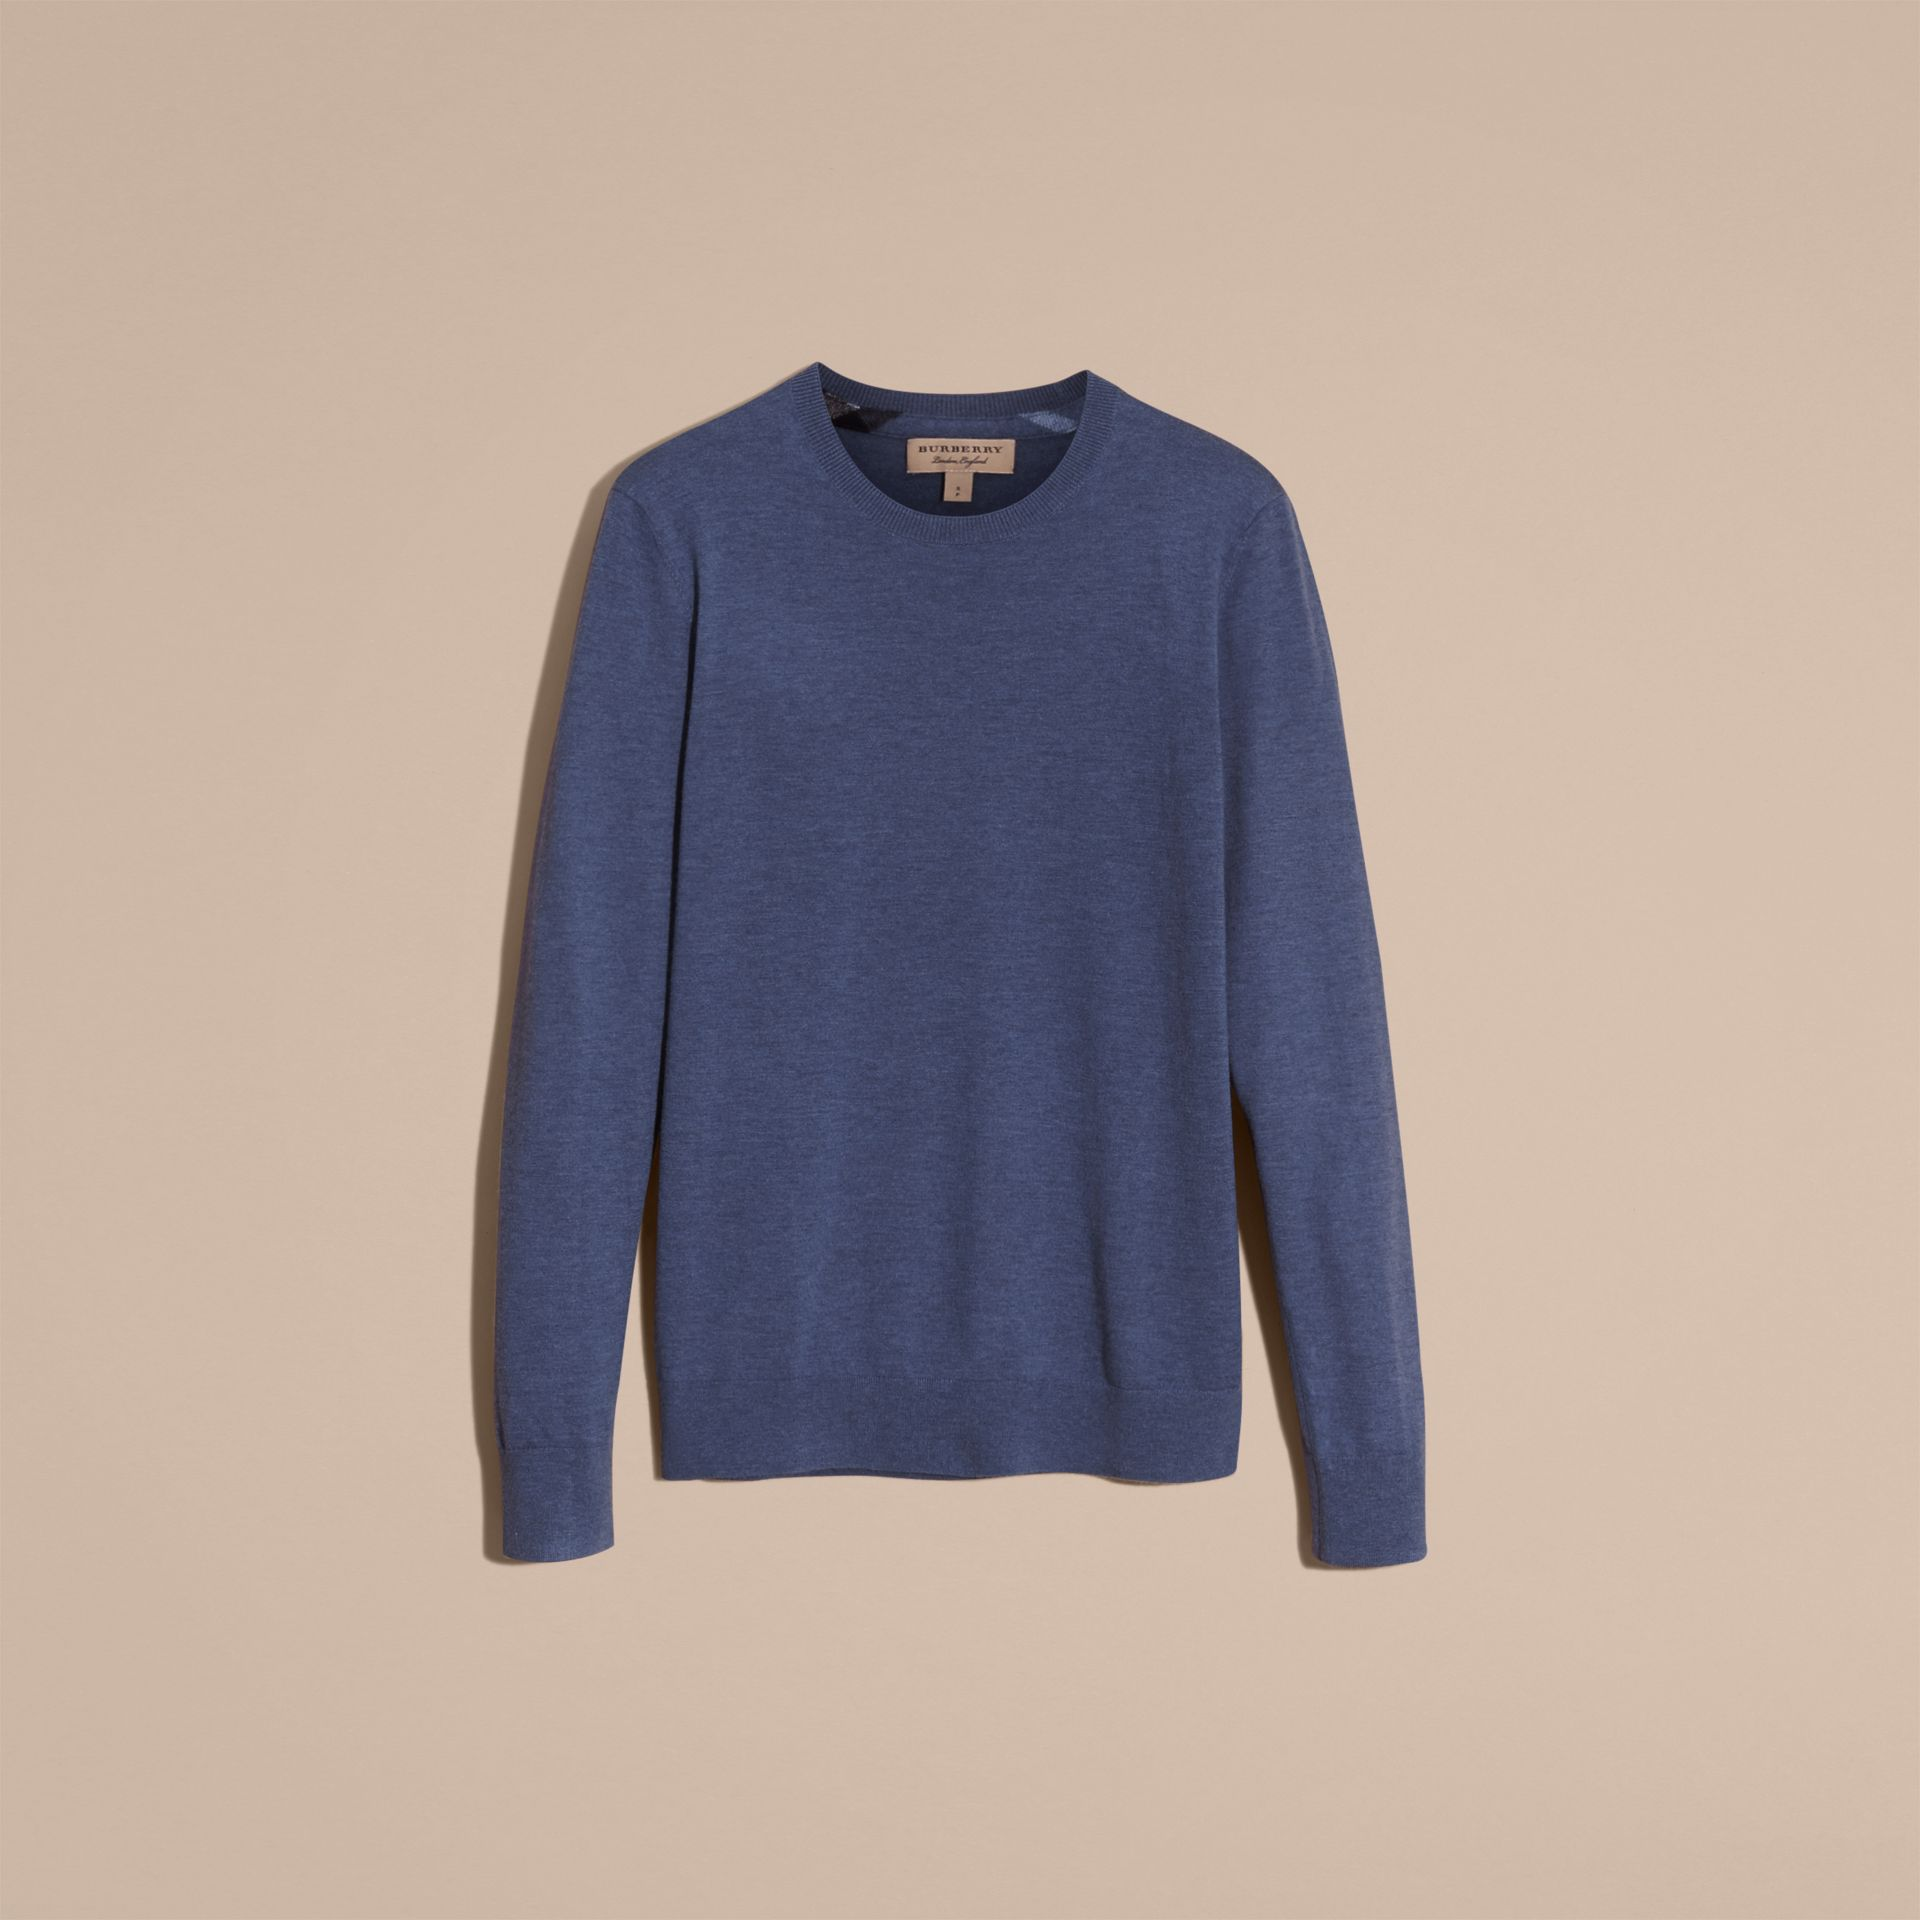 Check Jacquard Detail Cashmere Sweater in Dusty Blue - Men | Burberry United States - gallery image 3